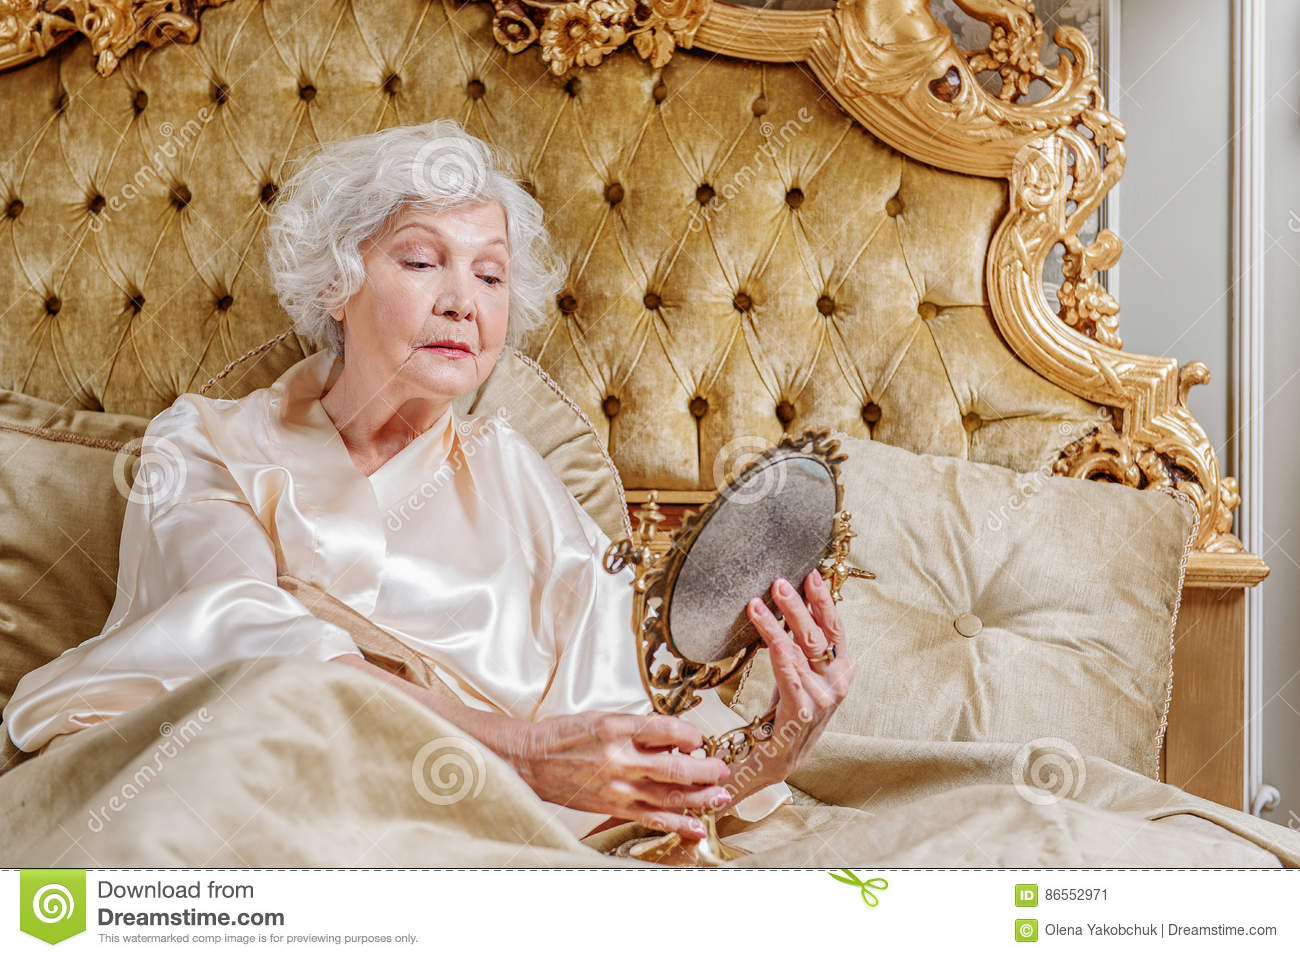 rich-old-woman-suffering-aging-my-youth-